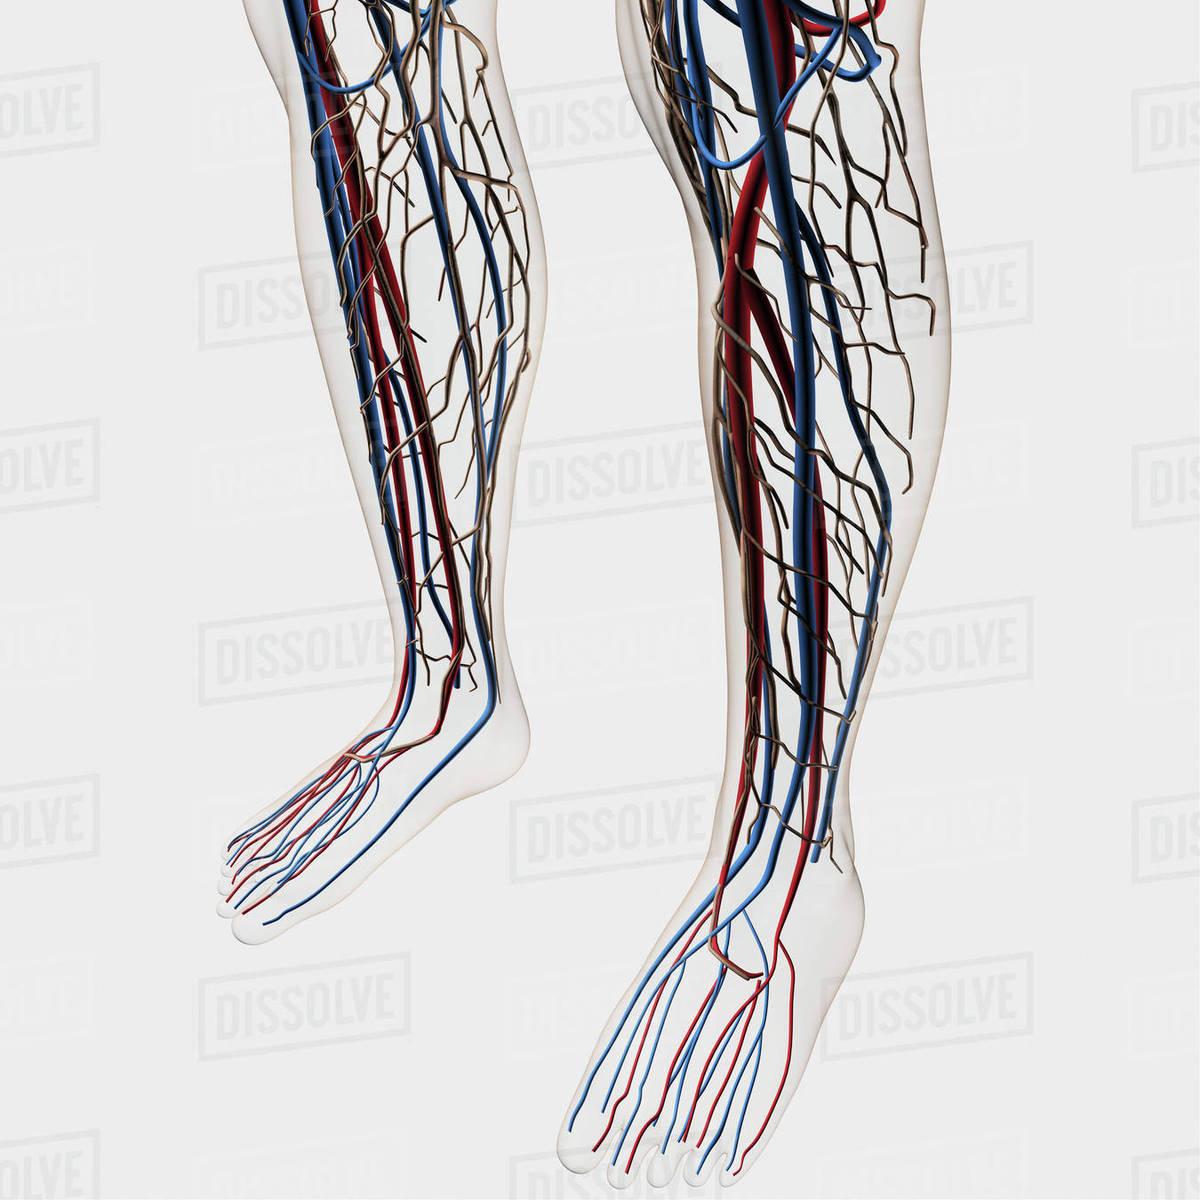 Medical Illustration Of Arteries Veins And Lymphatic System In